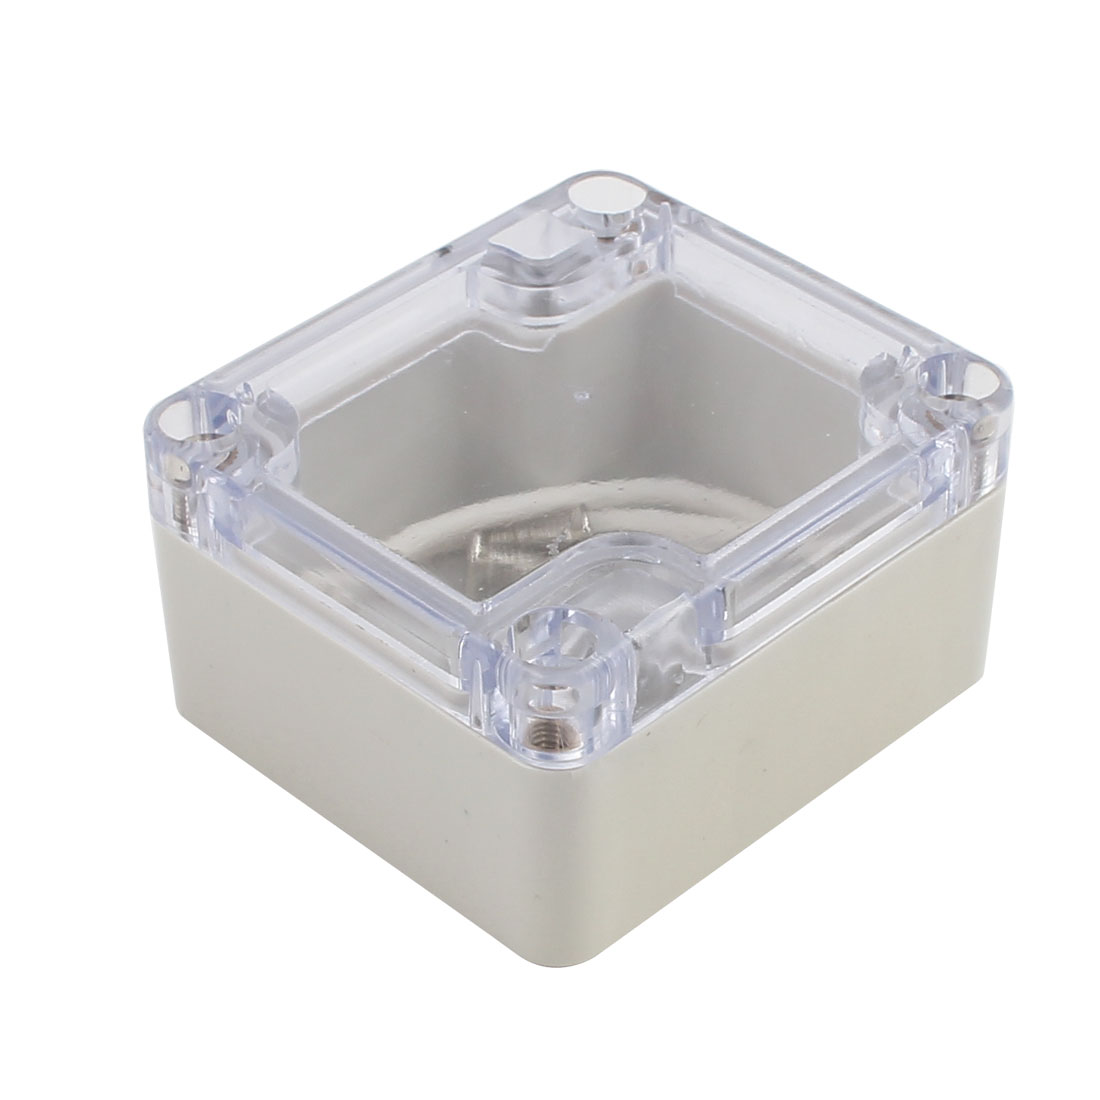 63mmx58mmx35mm Clear Cover Junction Electronic Project Box Enclosure